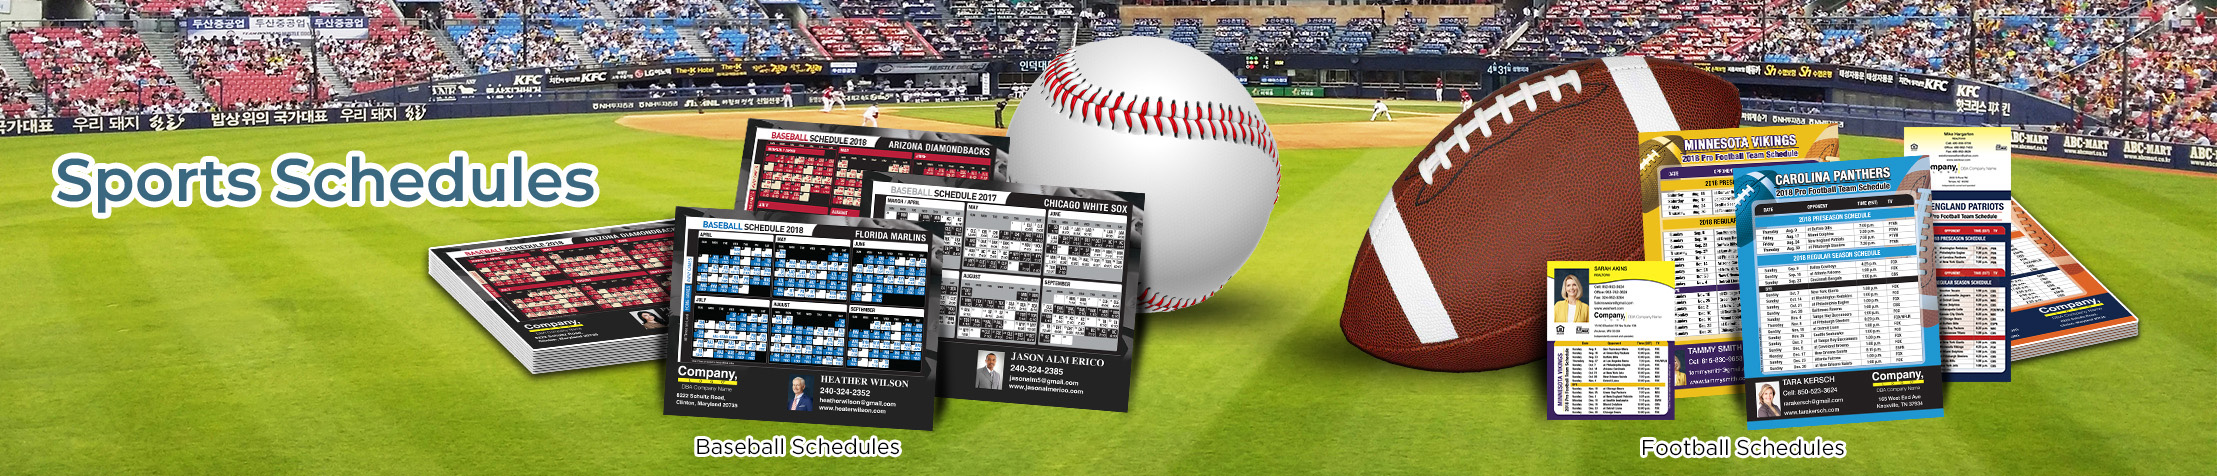 Weichert Real Estate Sports Schedules - Weichert custom sports schedule magnets | BestPrintBuy.com